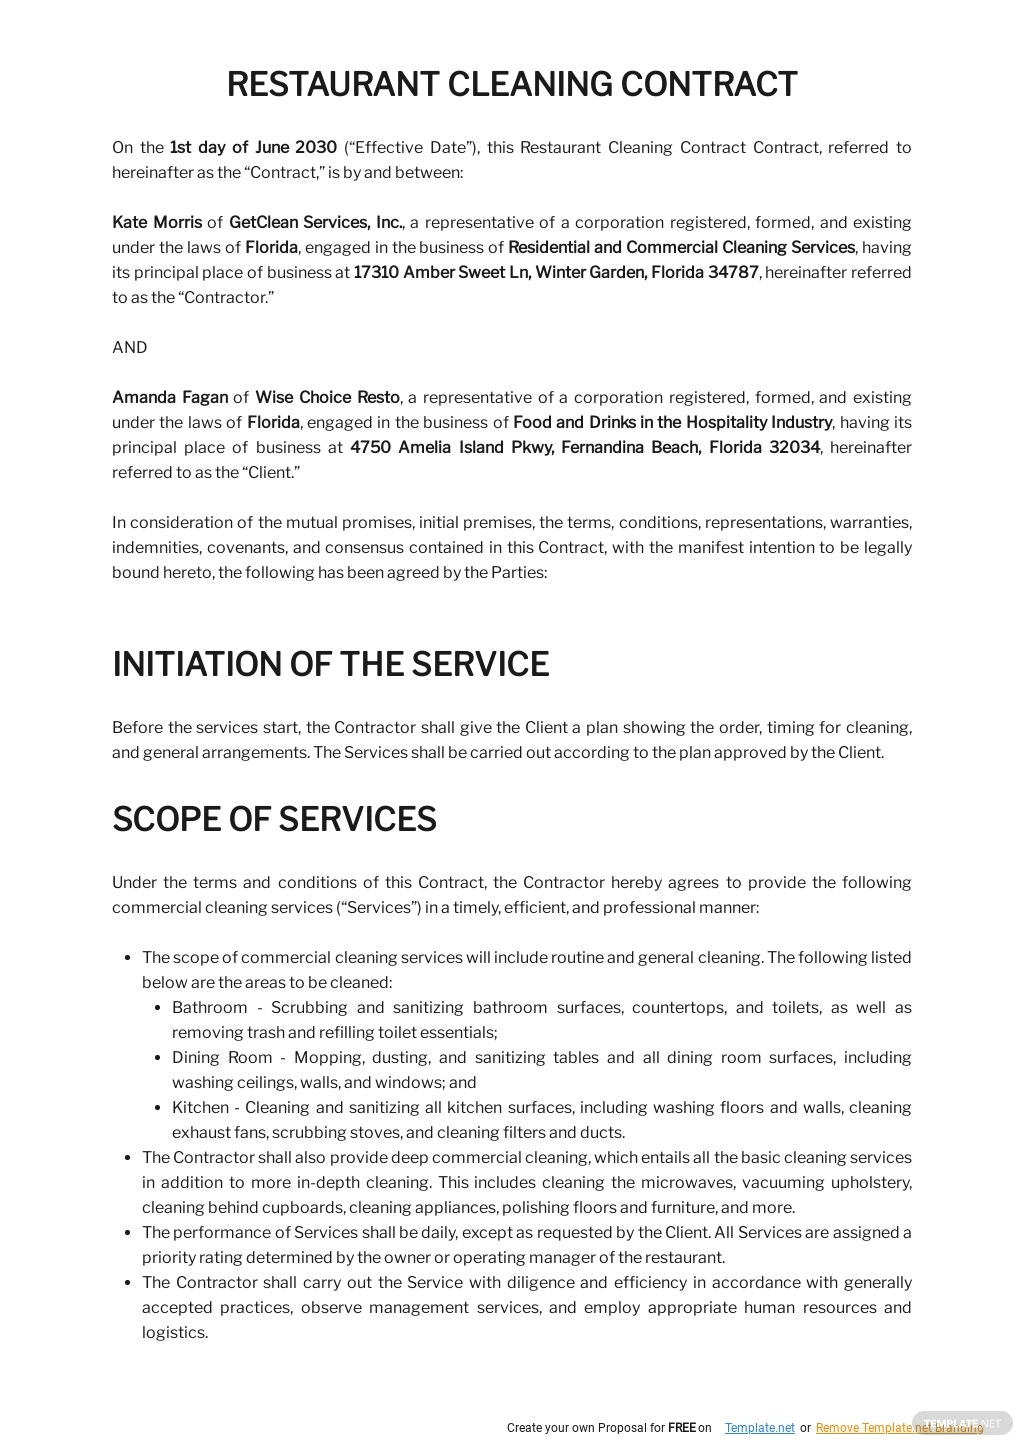 Restaurant Cleaning Contract Template 1.jpe